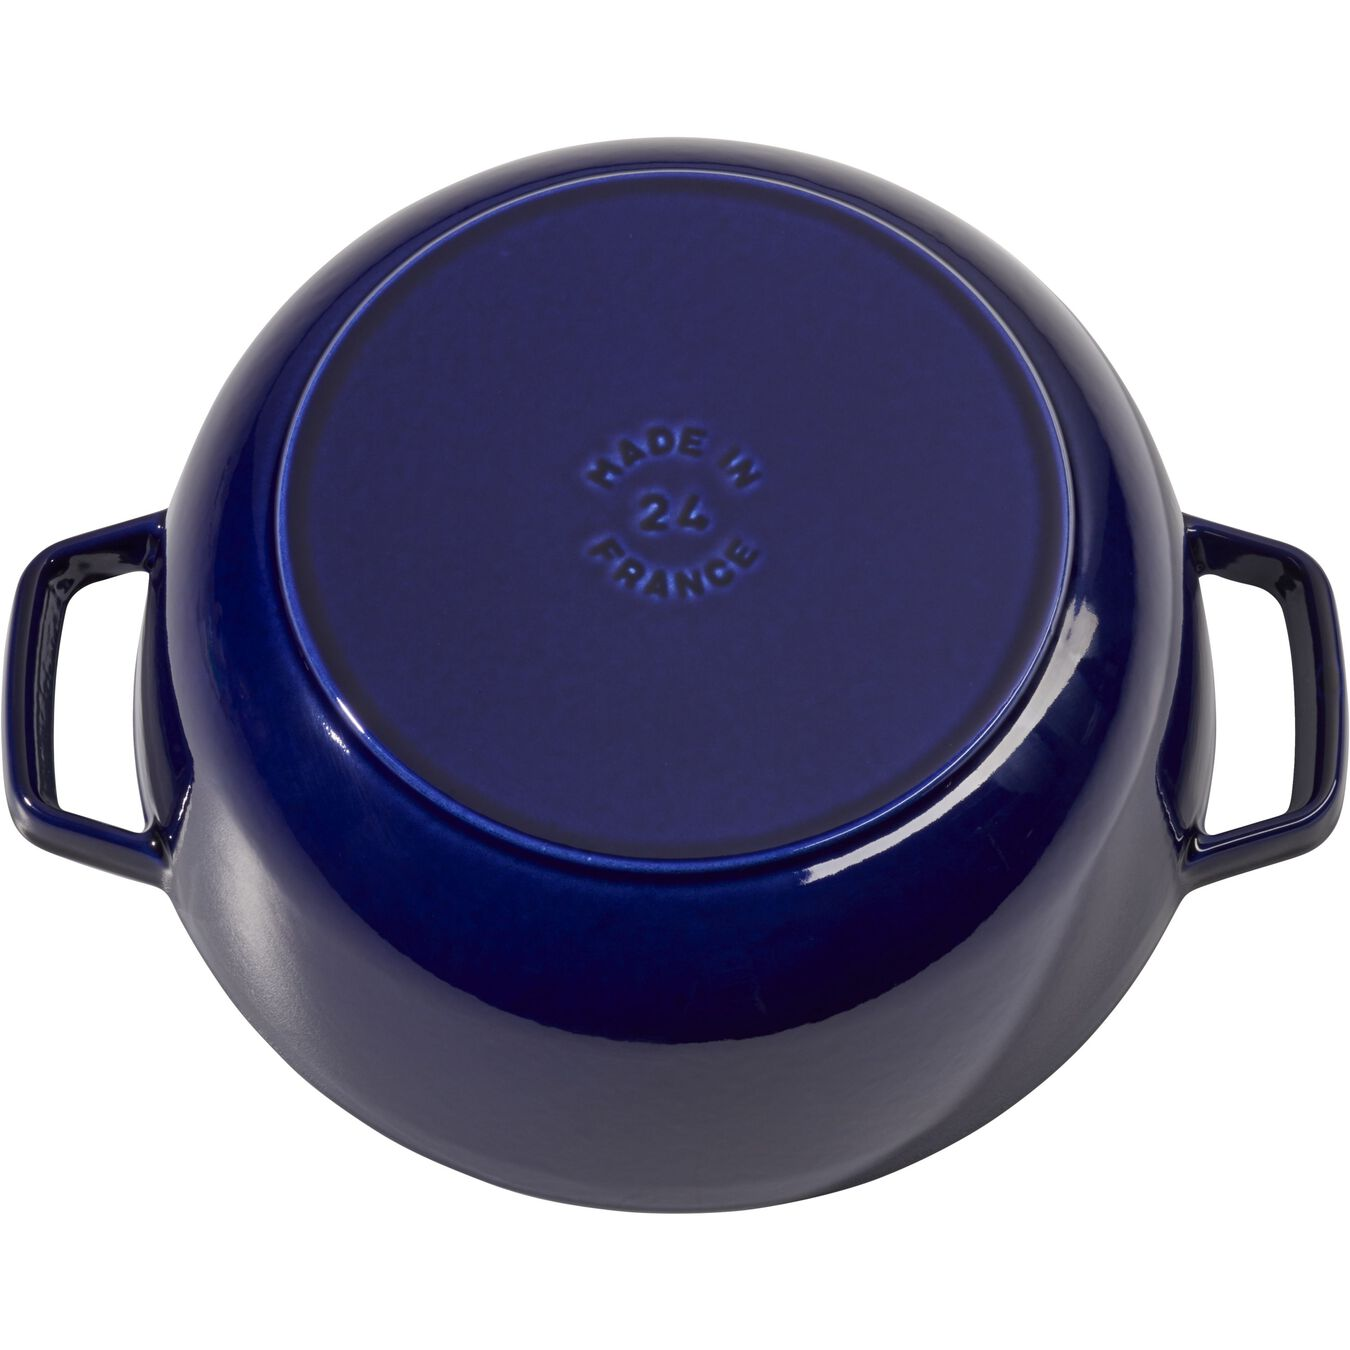 3.75-qt Essential French Oven - Dark Blue,,large 4